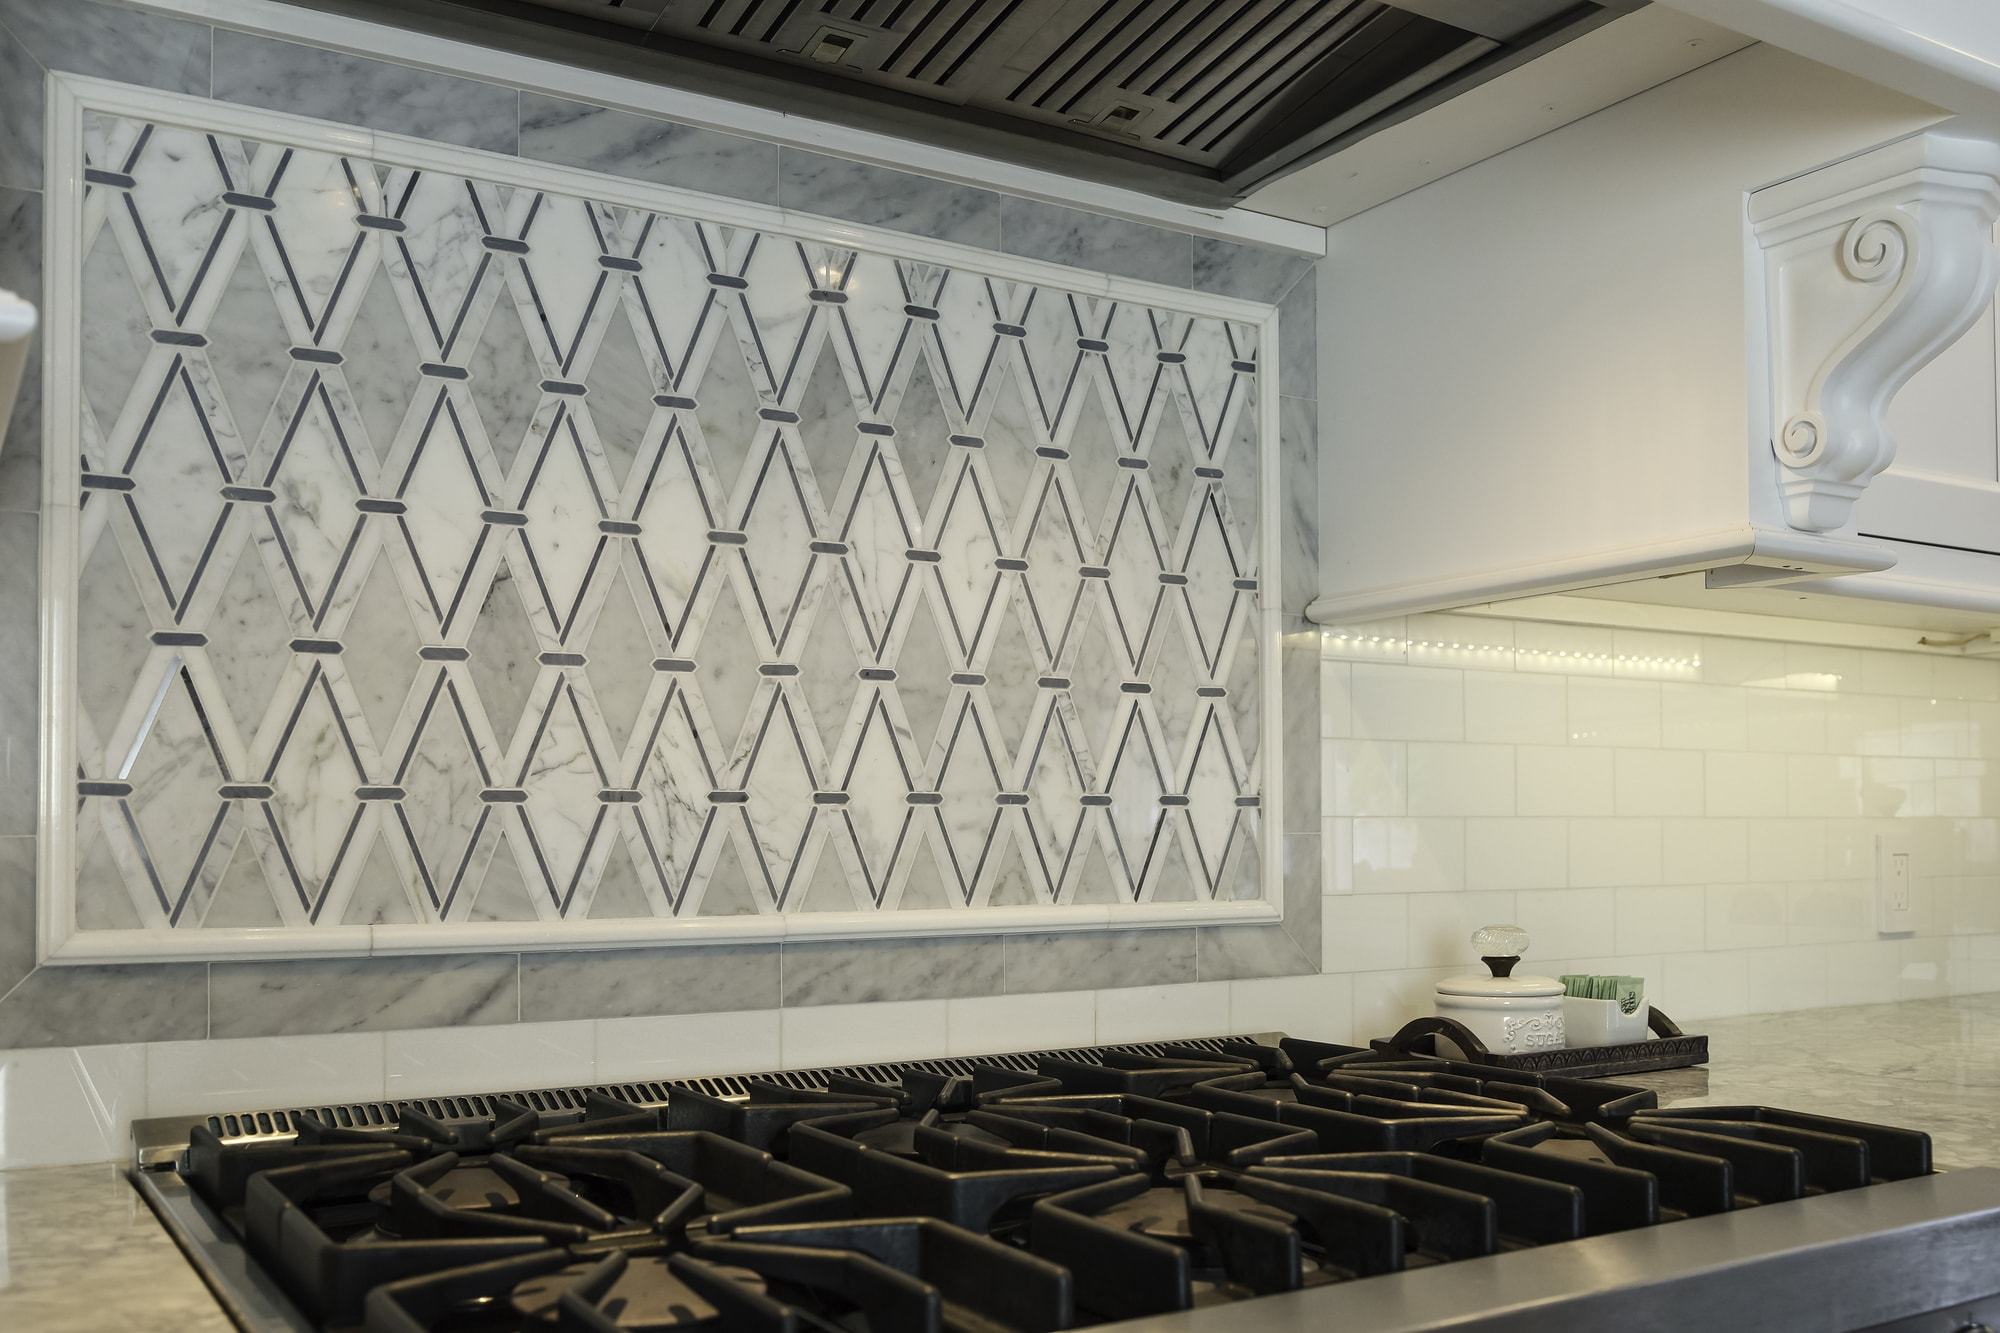 Transitional style kitchen with diamond shaped tiles backsplash